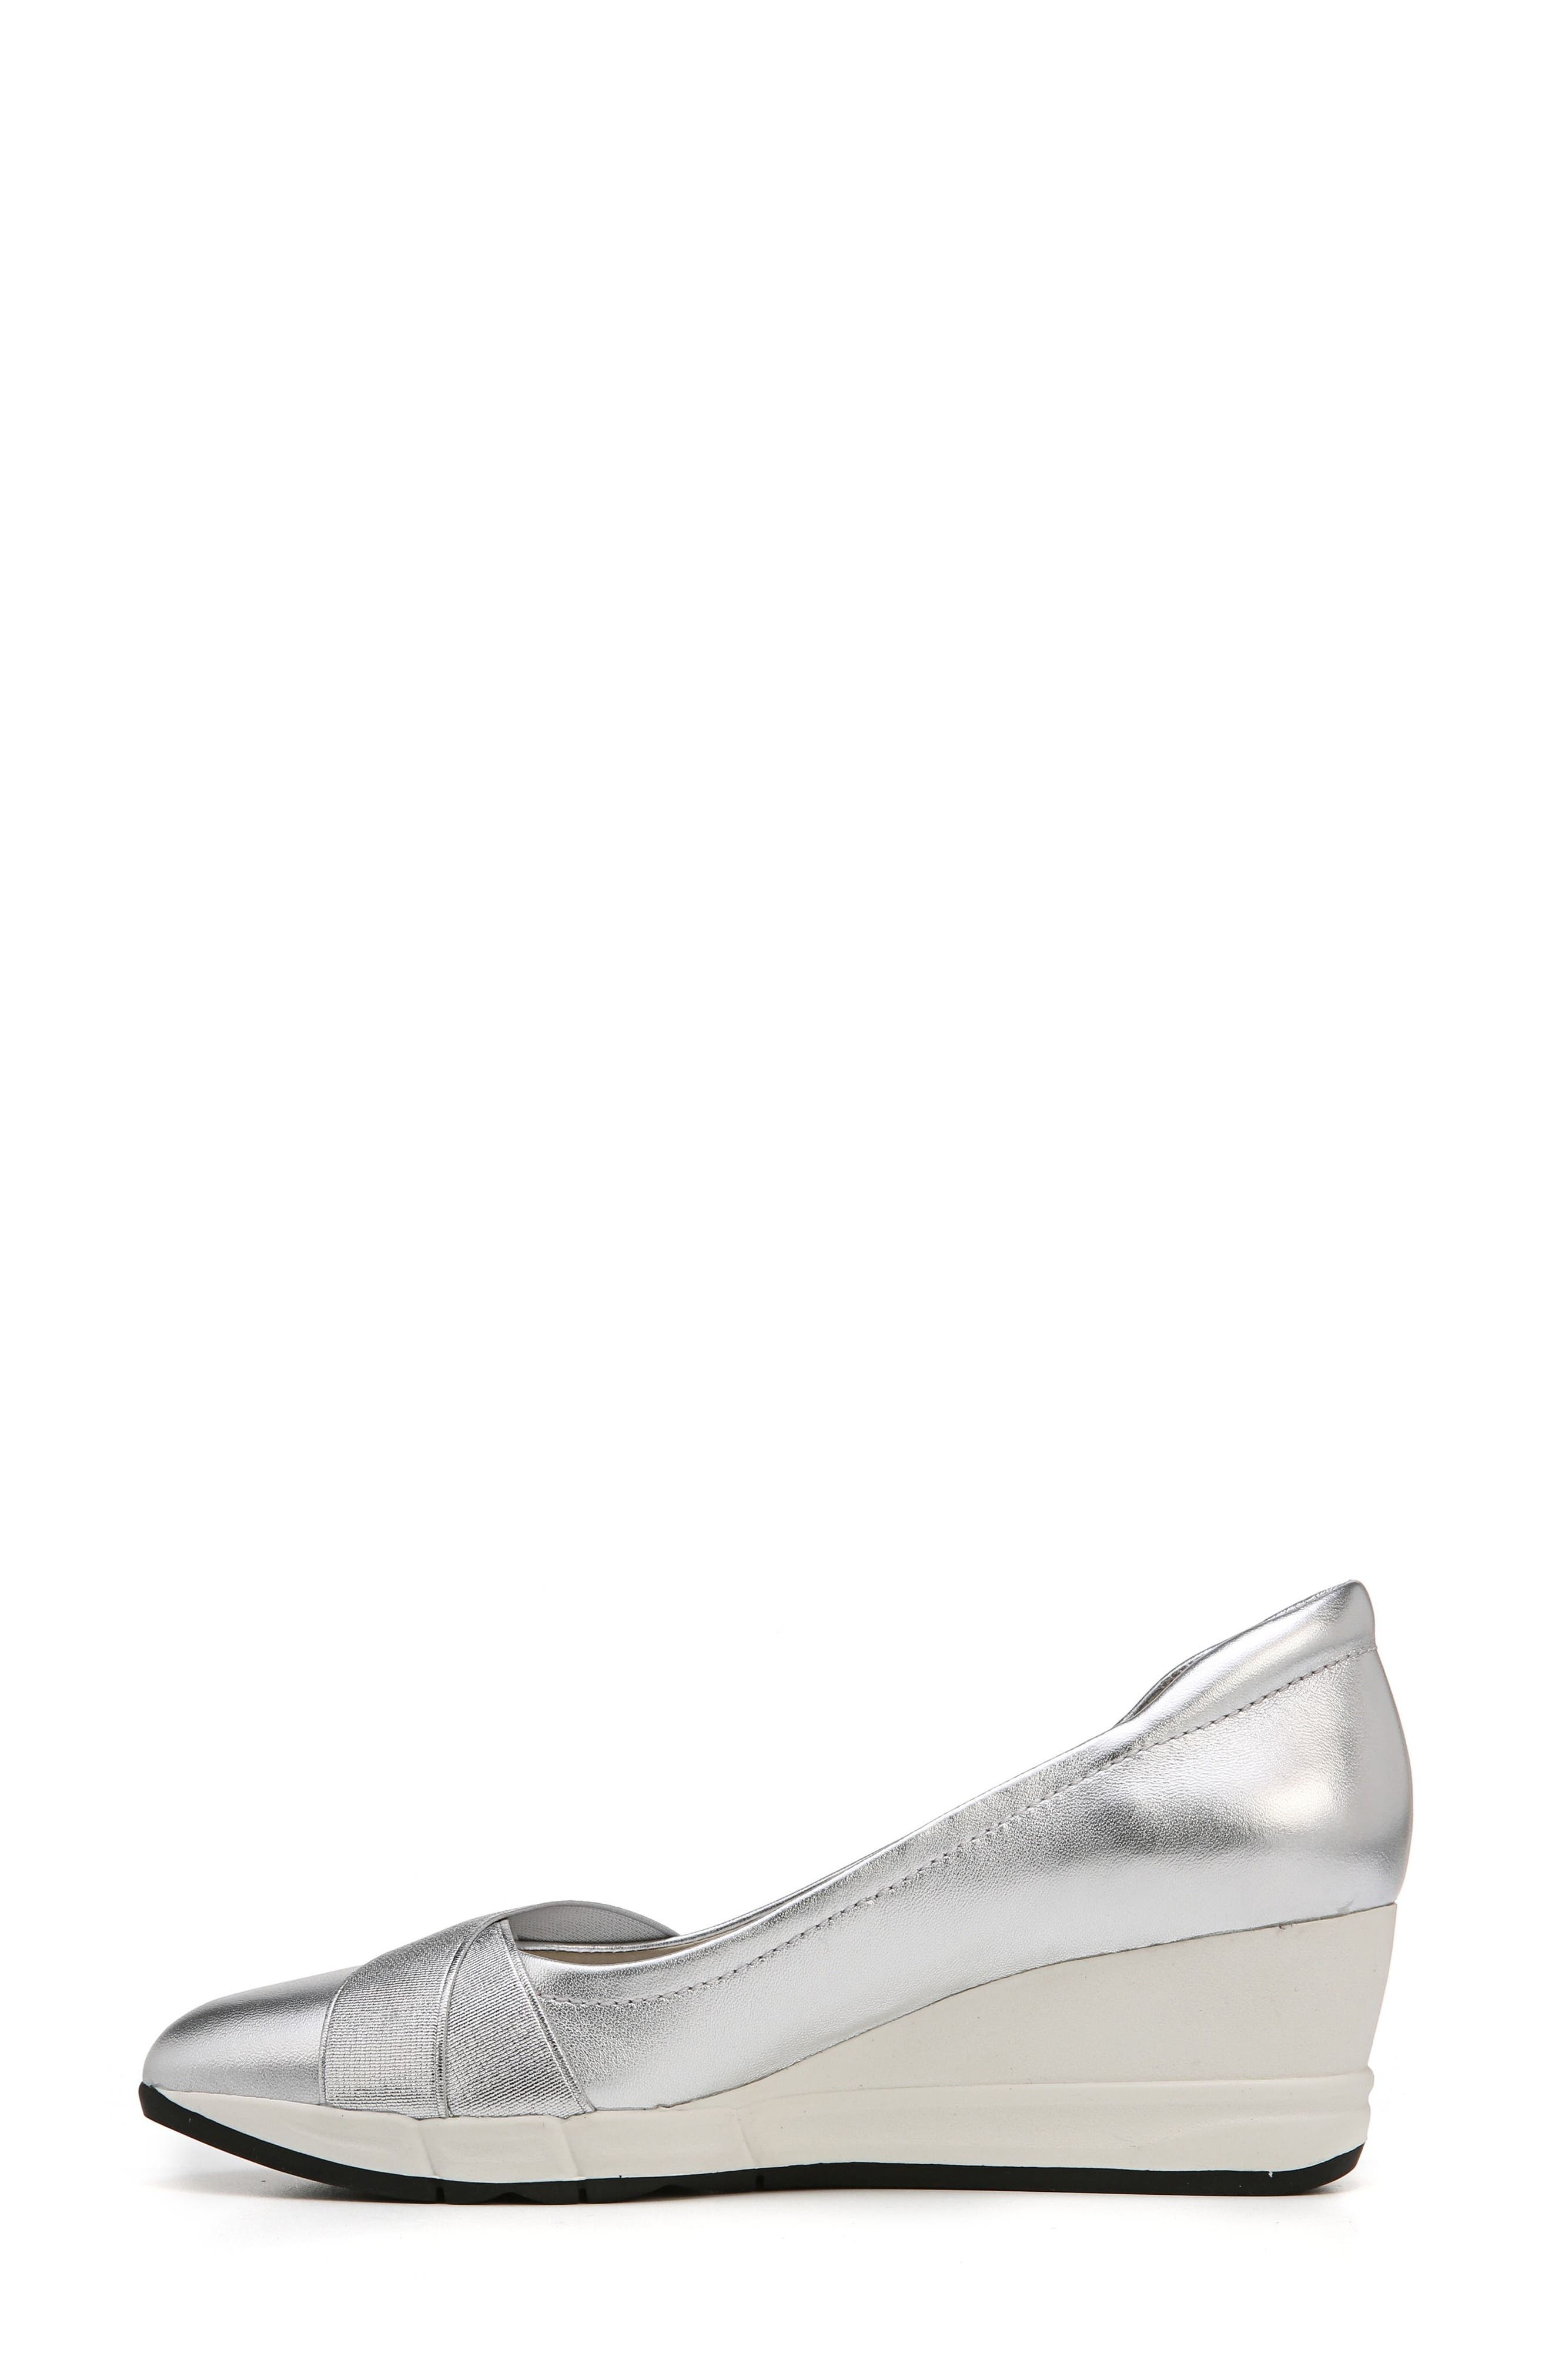 Harlyn Wedge Pump,                             Alternate thumbnail 4, color,                             Silver Leather